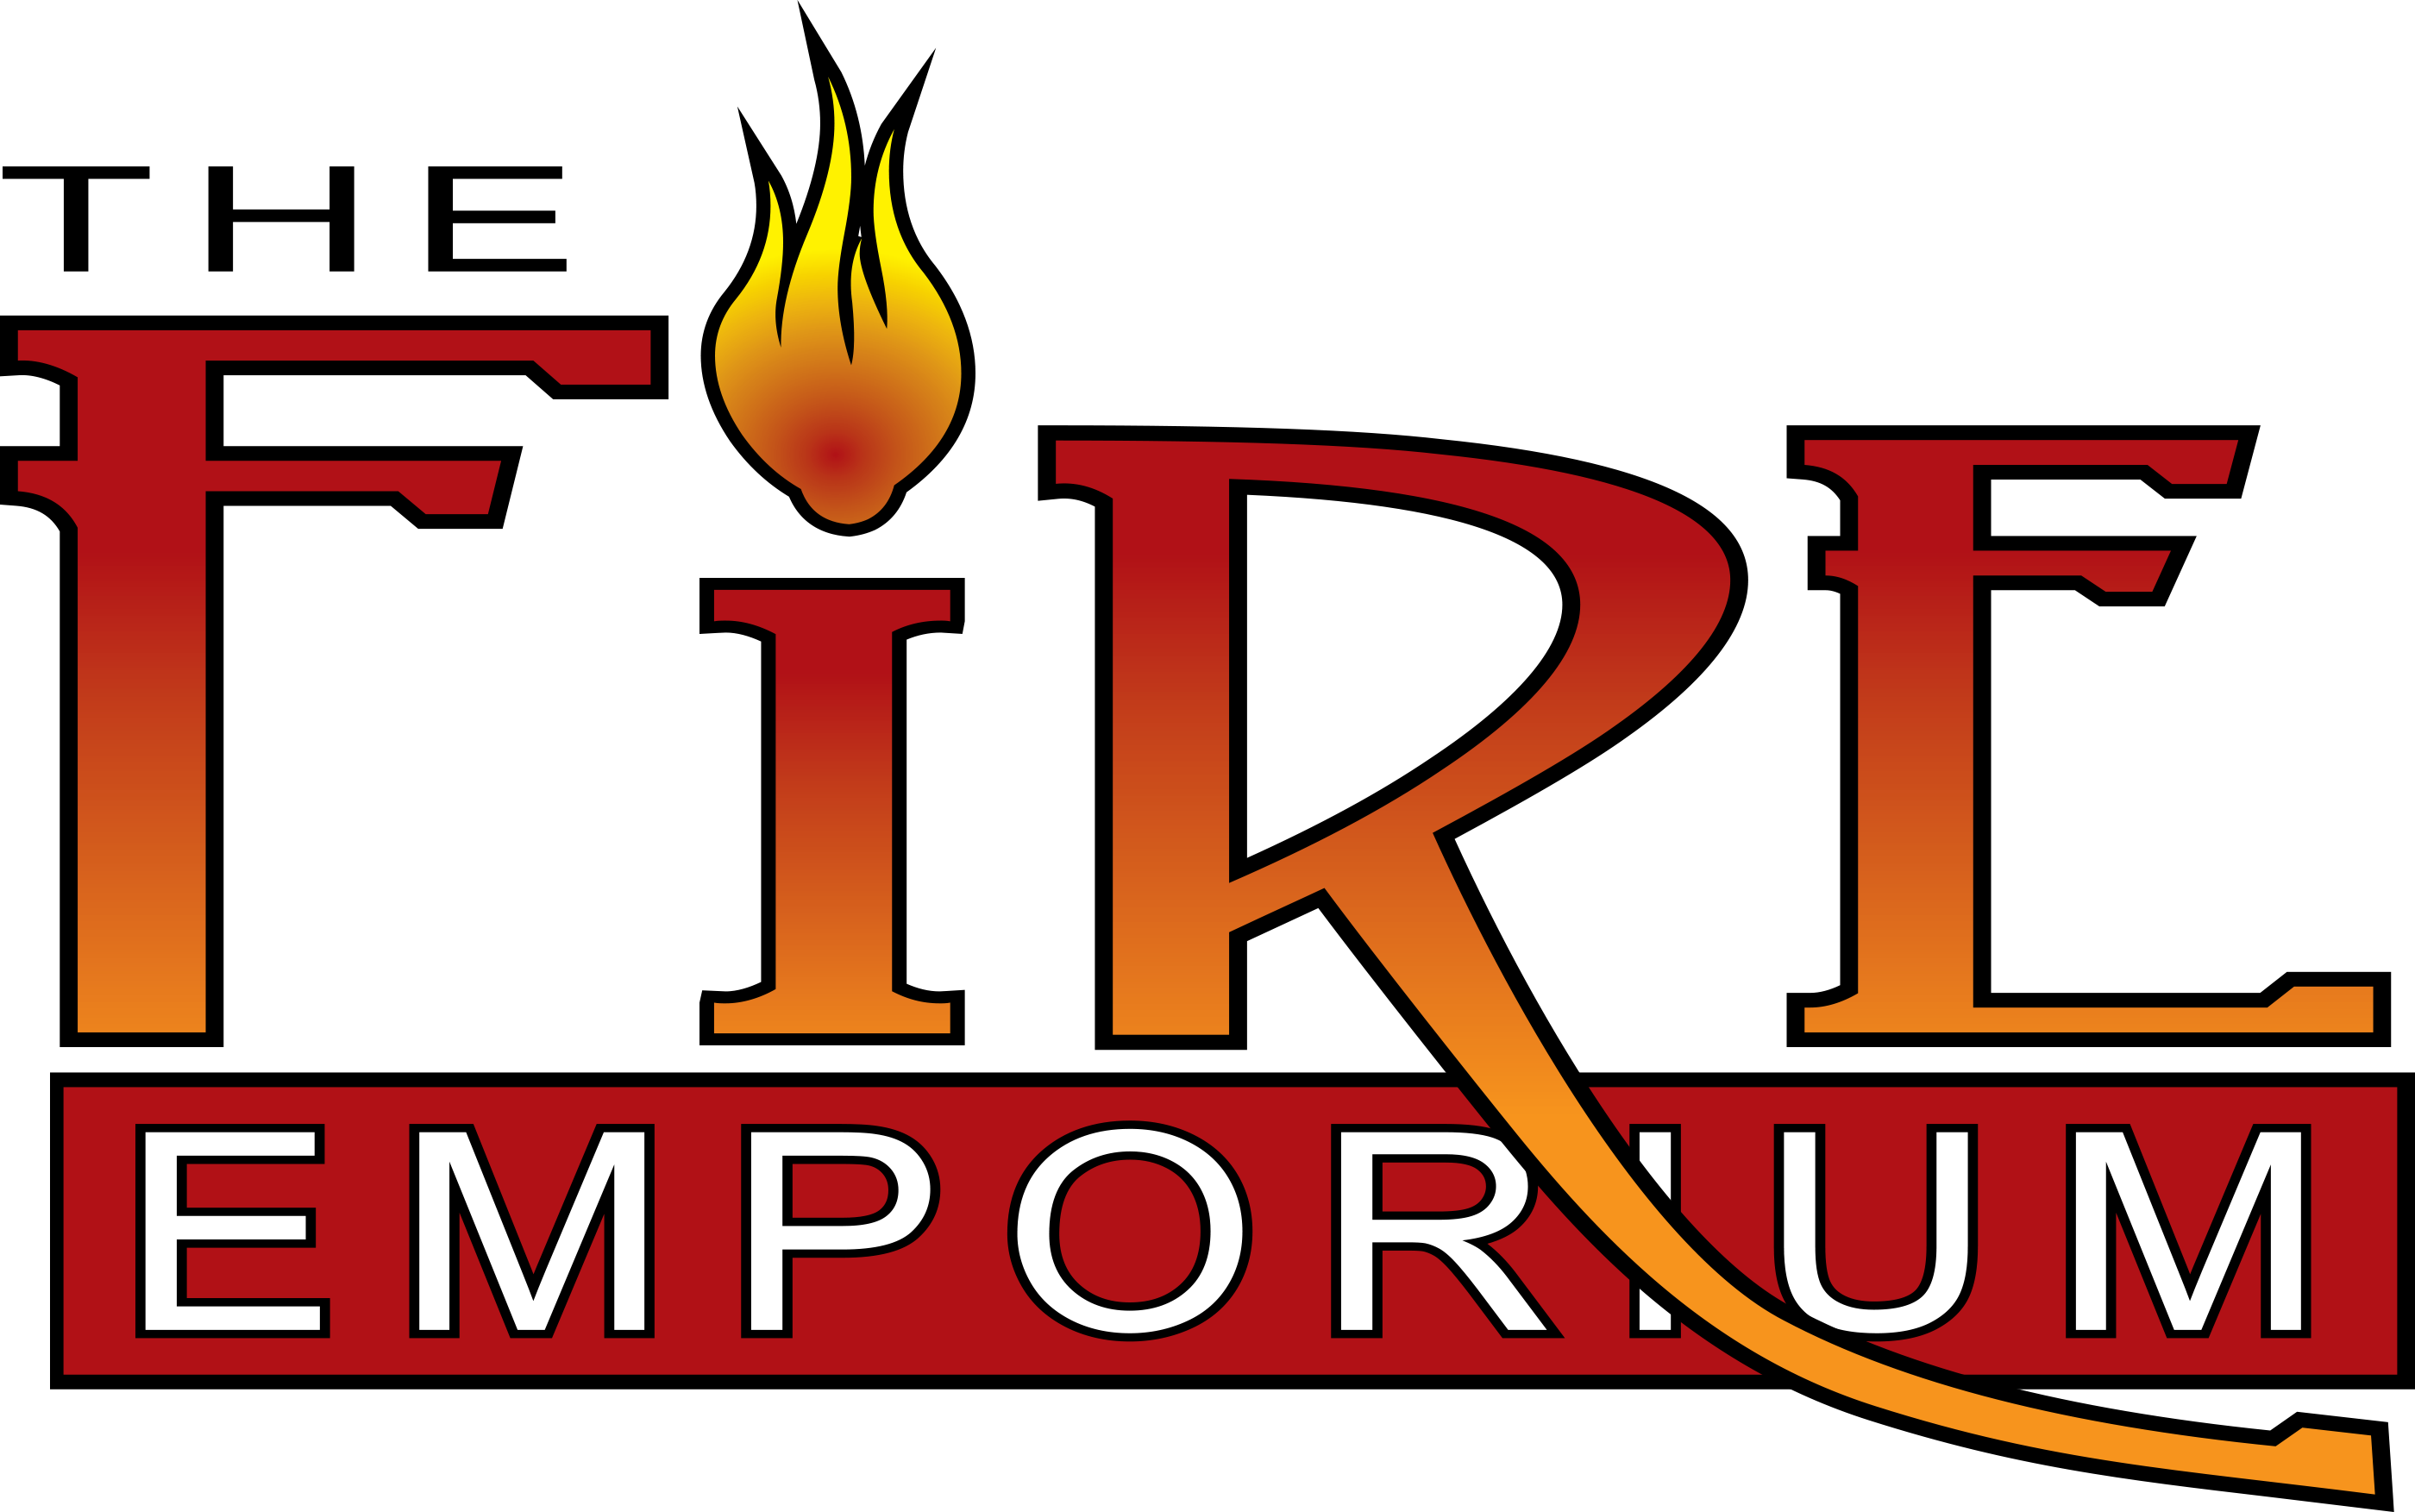 The Fire Emporium